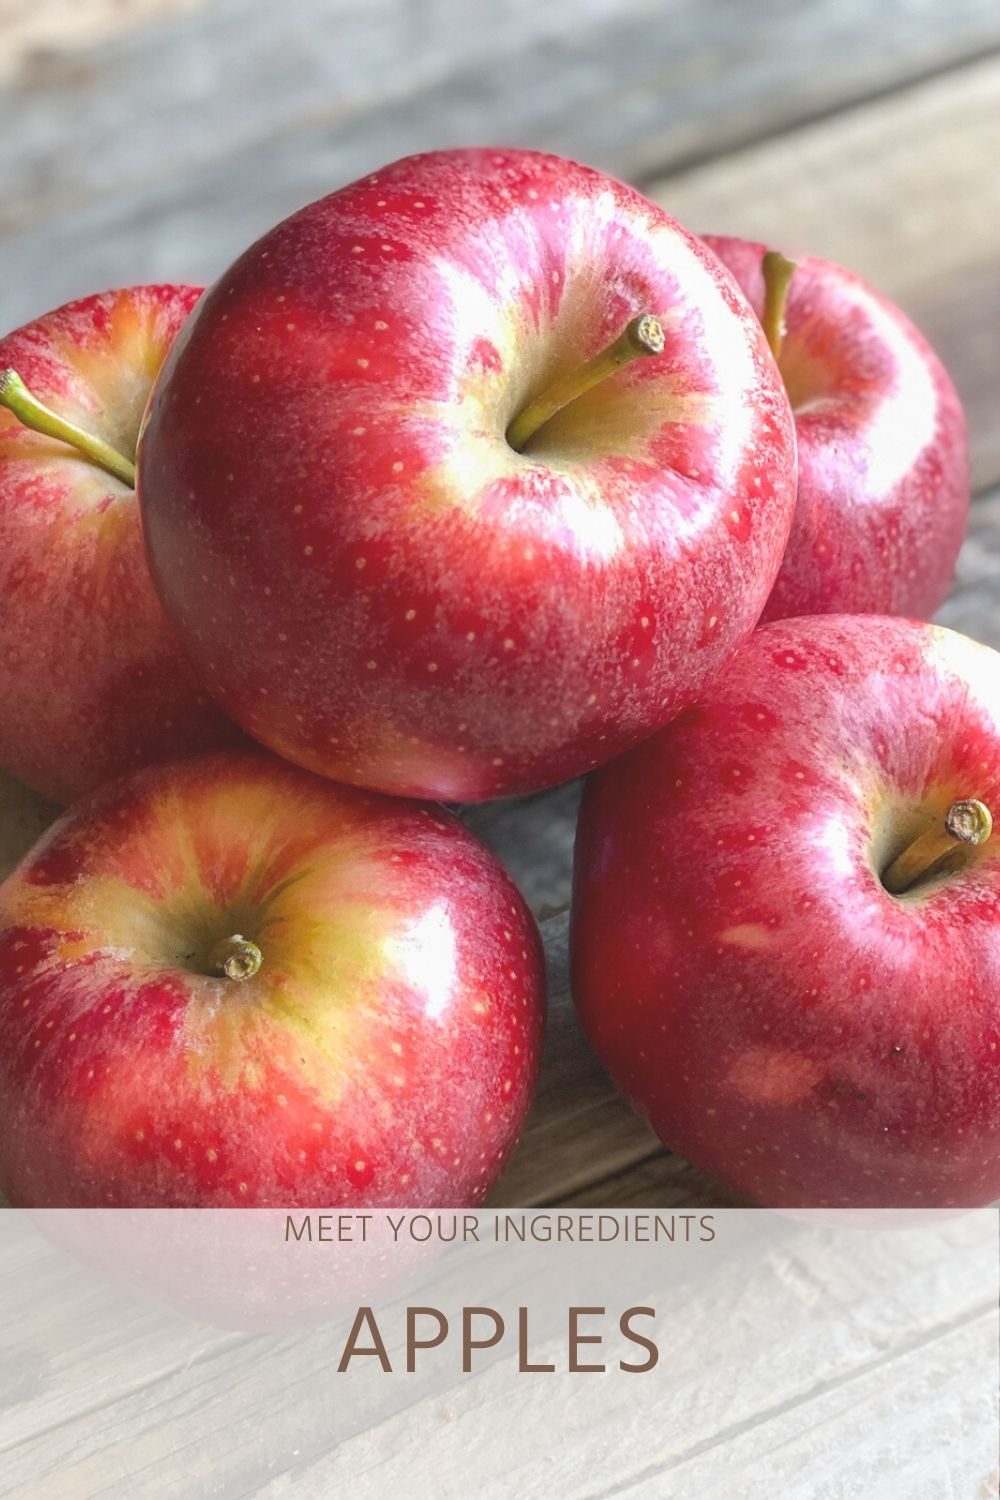 Dietitian Guide to Apples